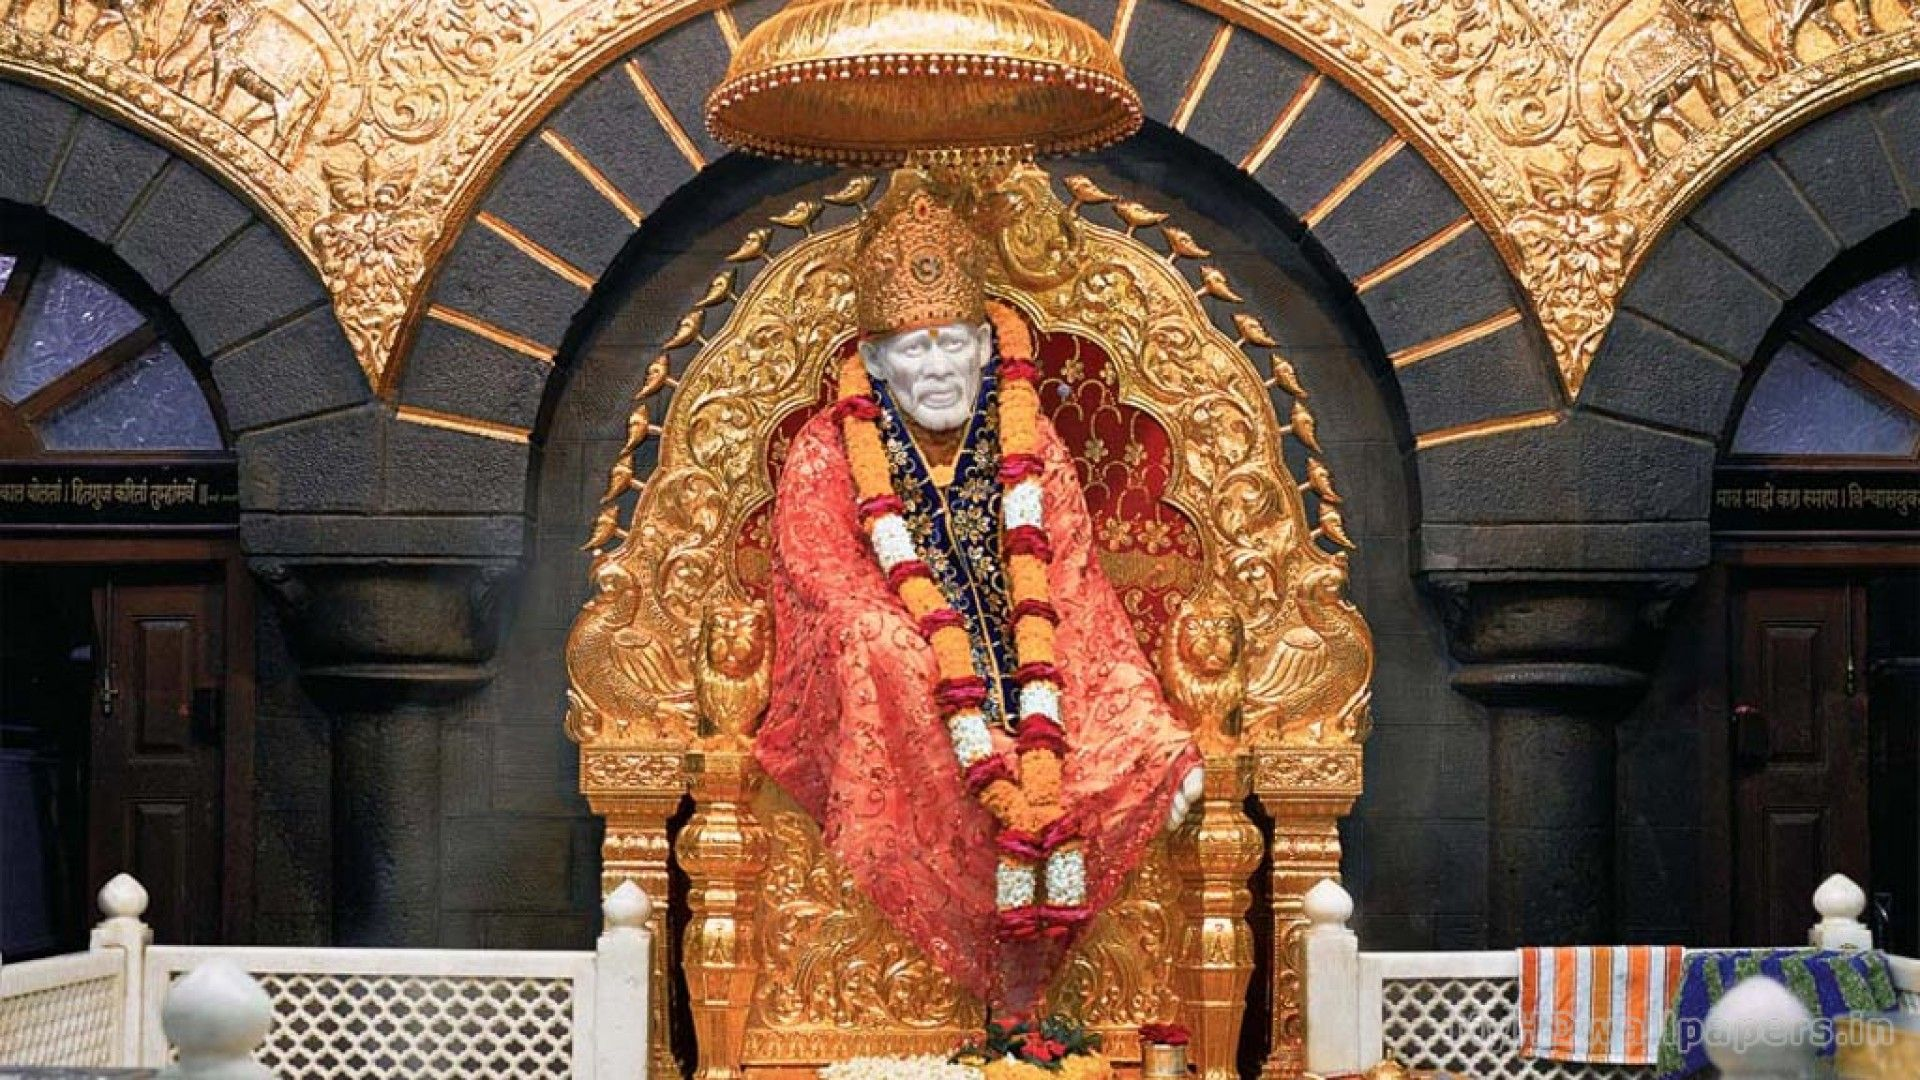 Pin By Hd Wallpapers On Hd Wallpapers In 2019 Pinterest Sai Baba